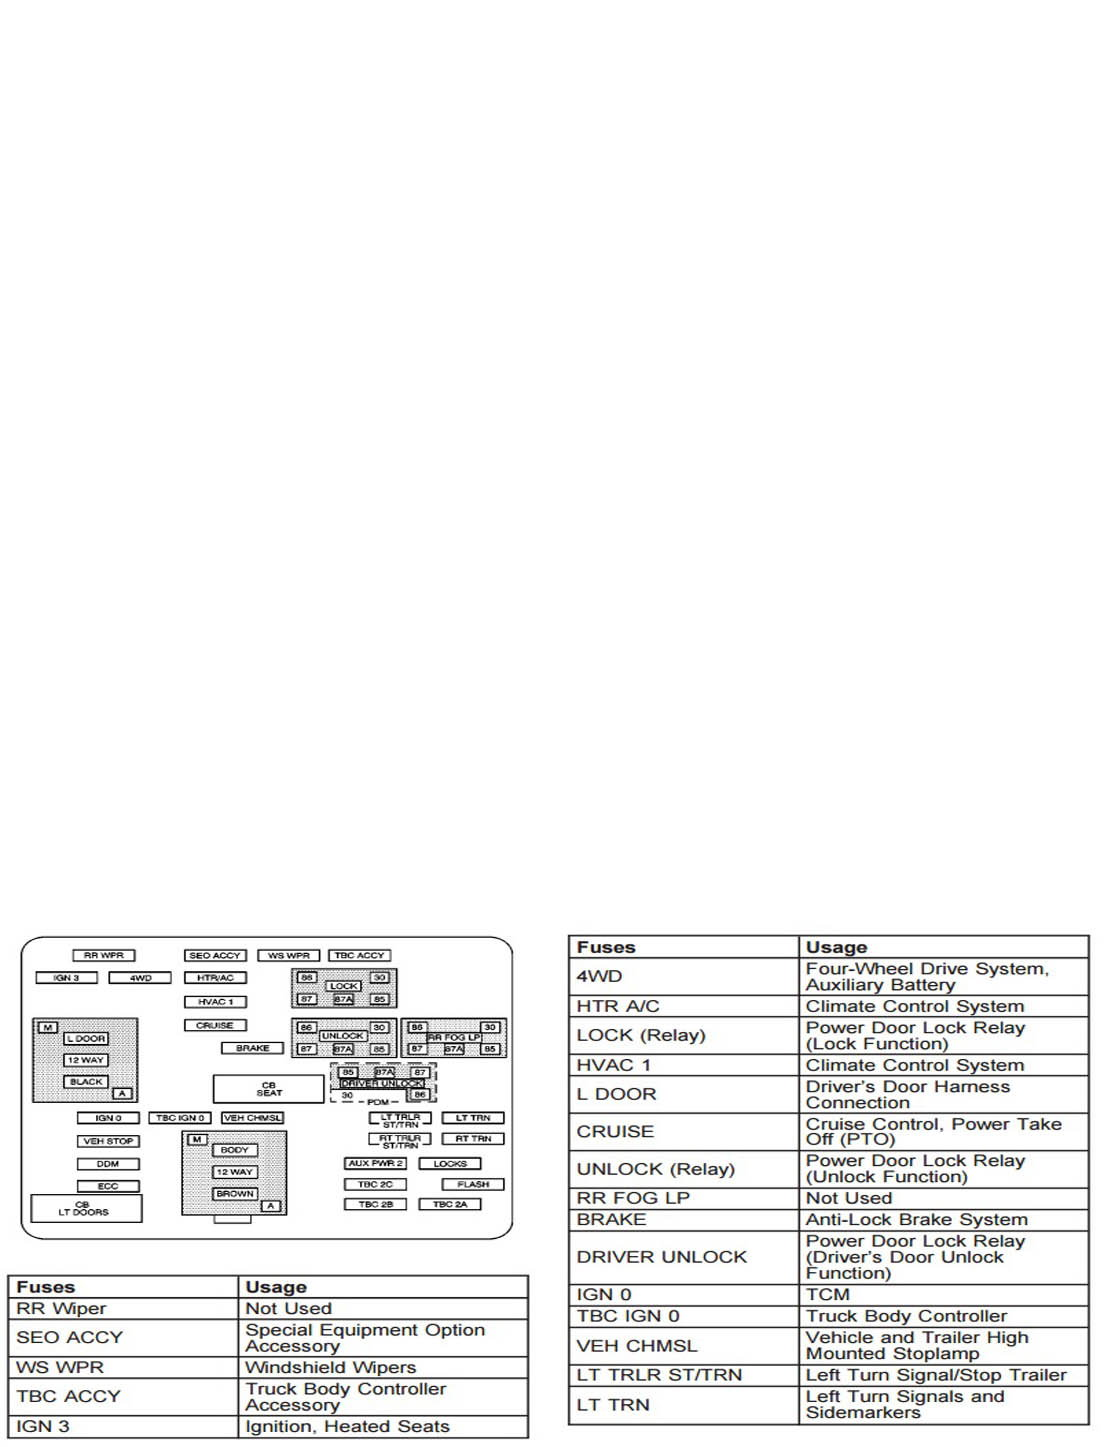 Instrument panel fuse box diagram and application.